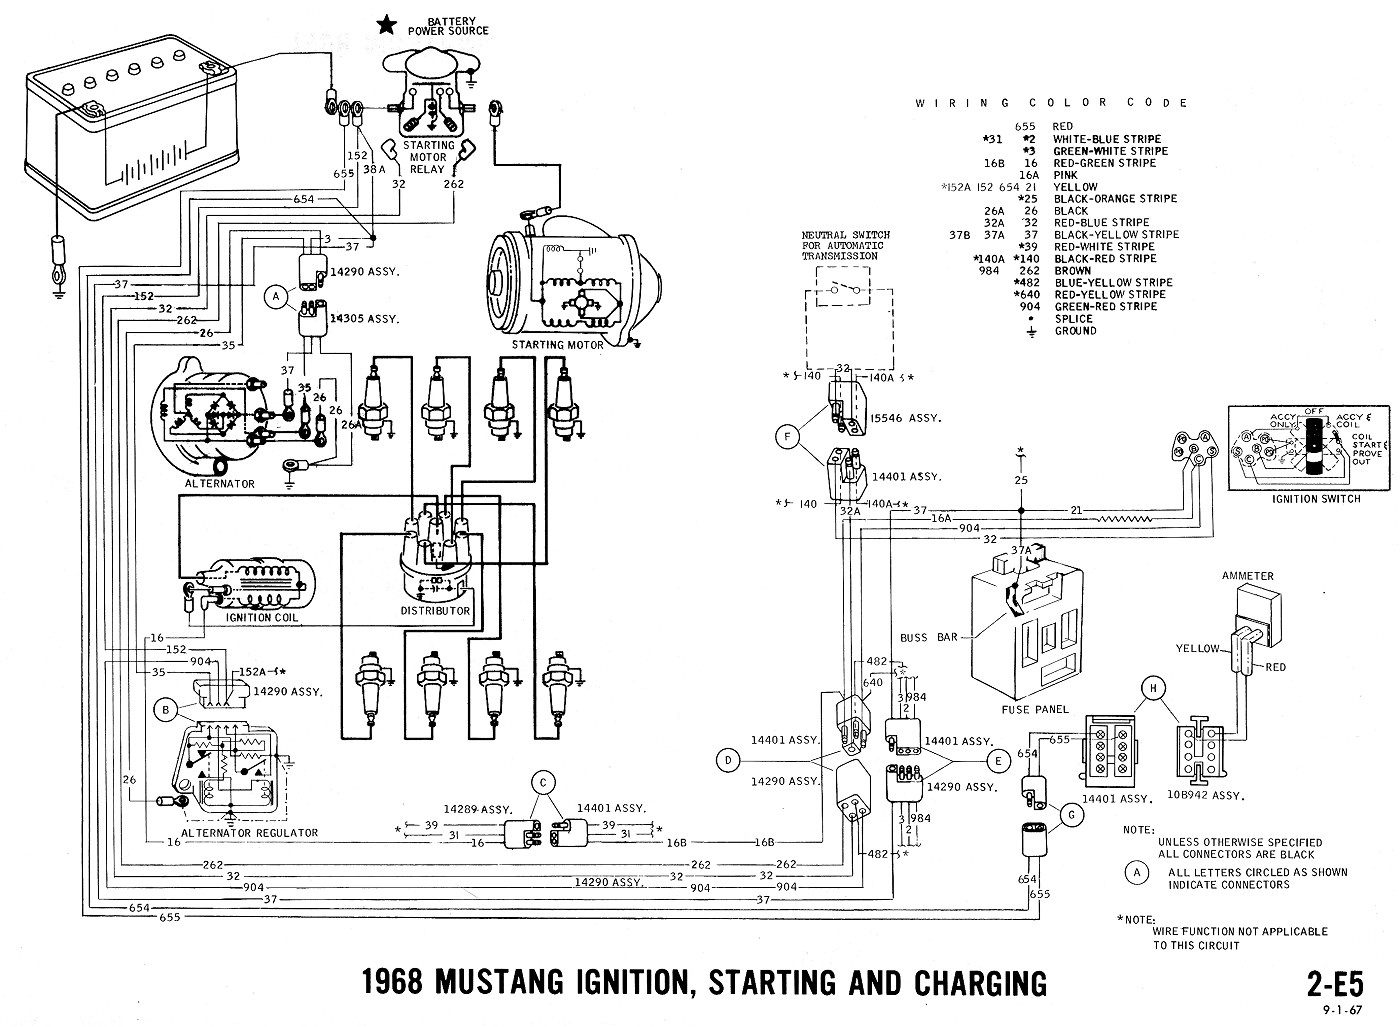 E5 1968 mustang wiring diagrams evolving software 1966 mustang wiring harness at readyjetset.co